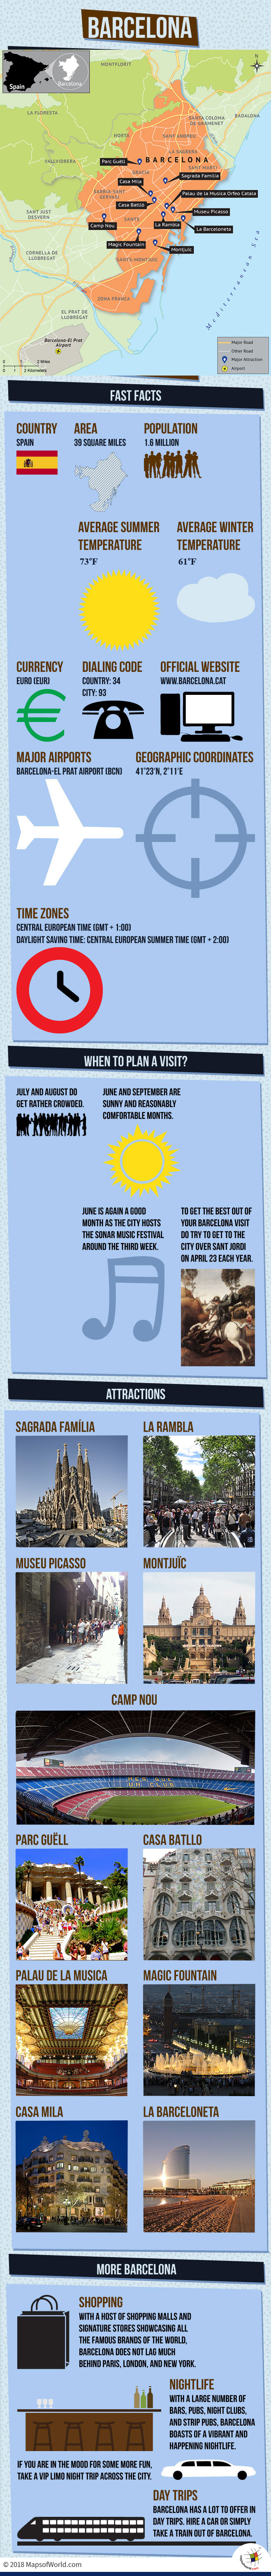 Infographic Depicting Barcelona Tourist Attractions